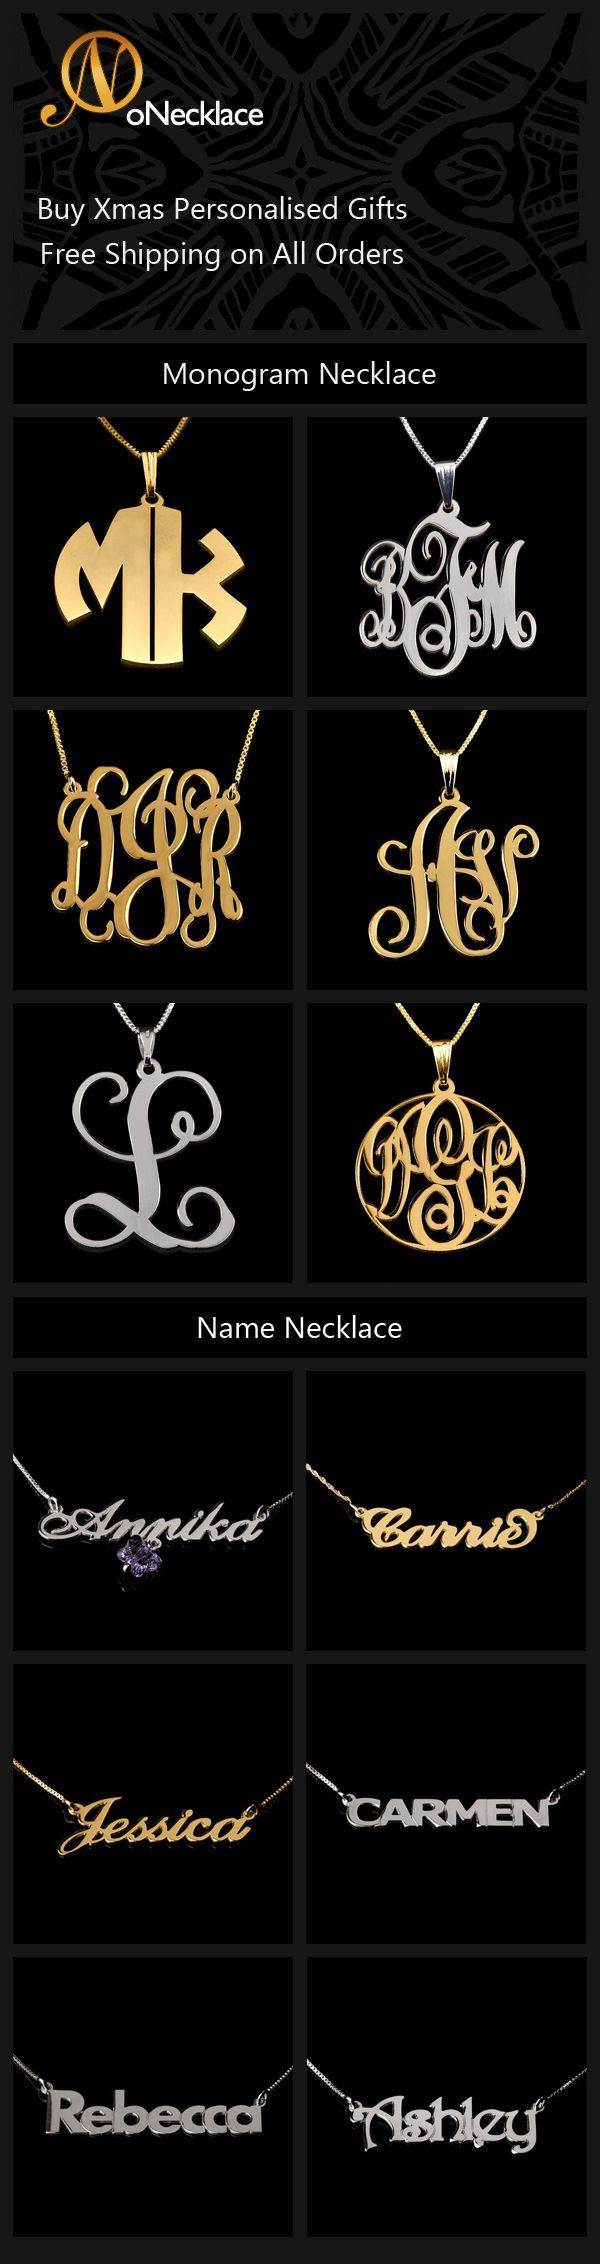 win an infinity necklace